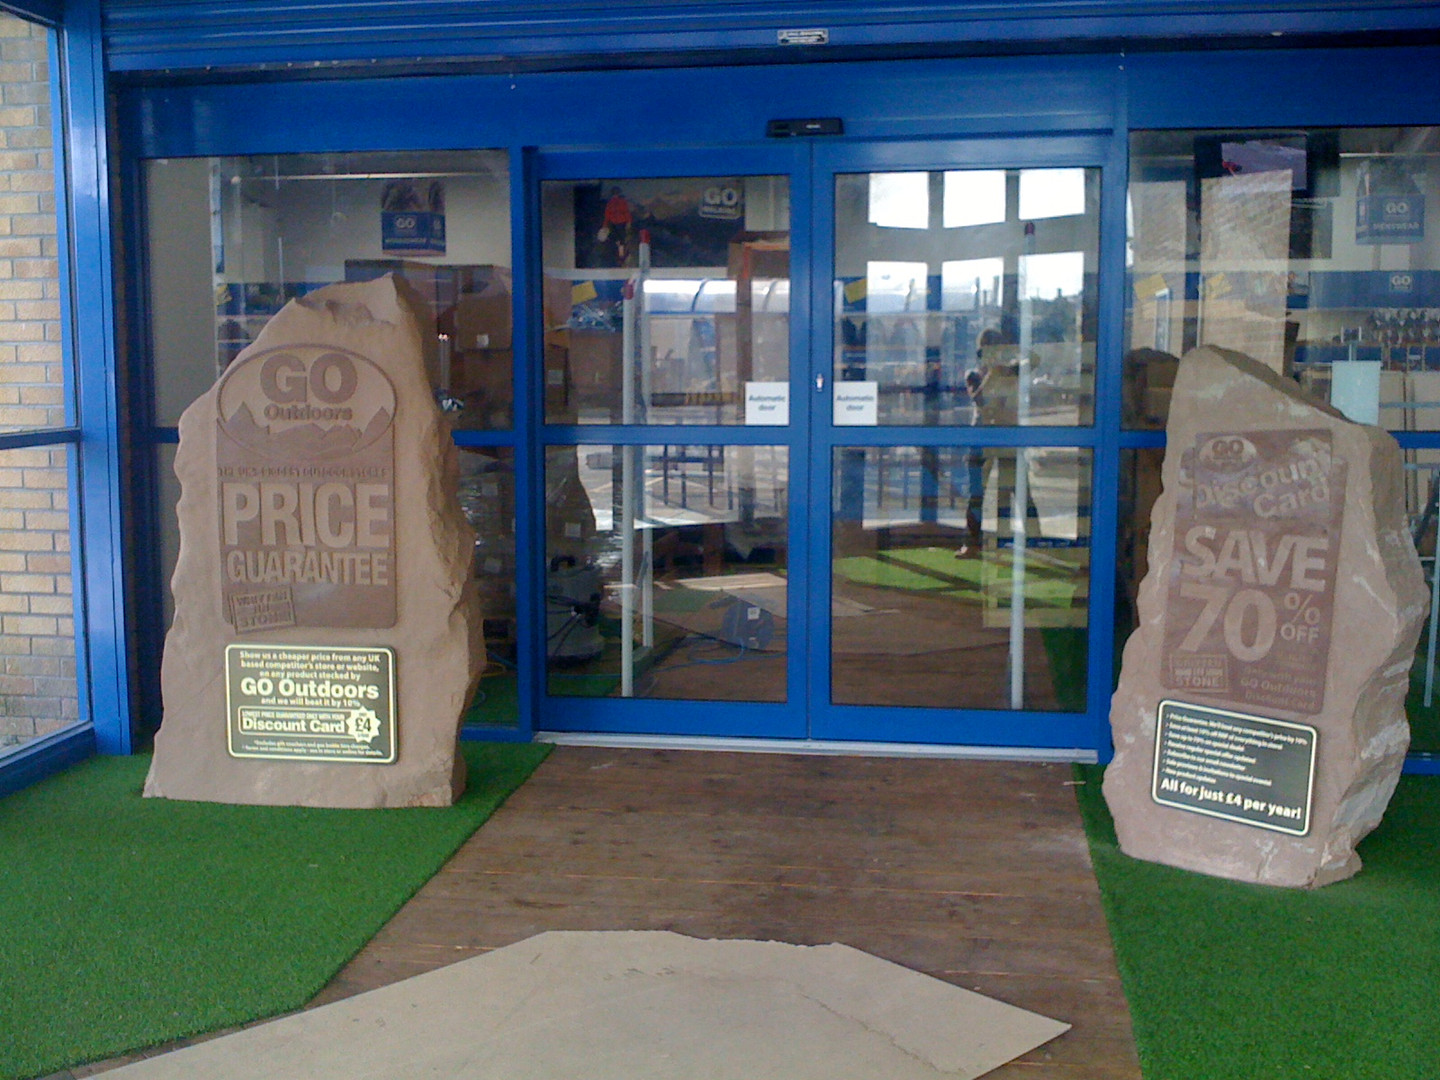 Go Outdoors branded entrance stones